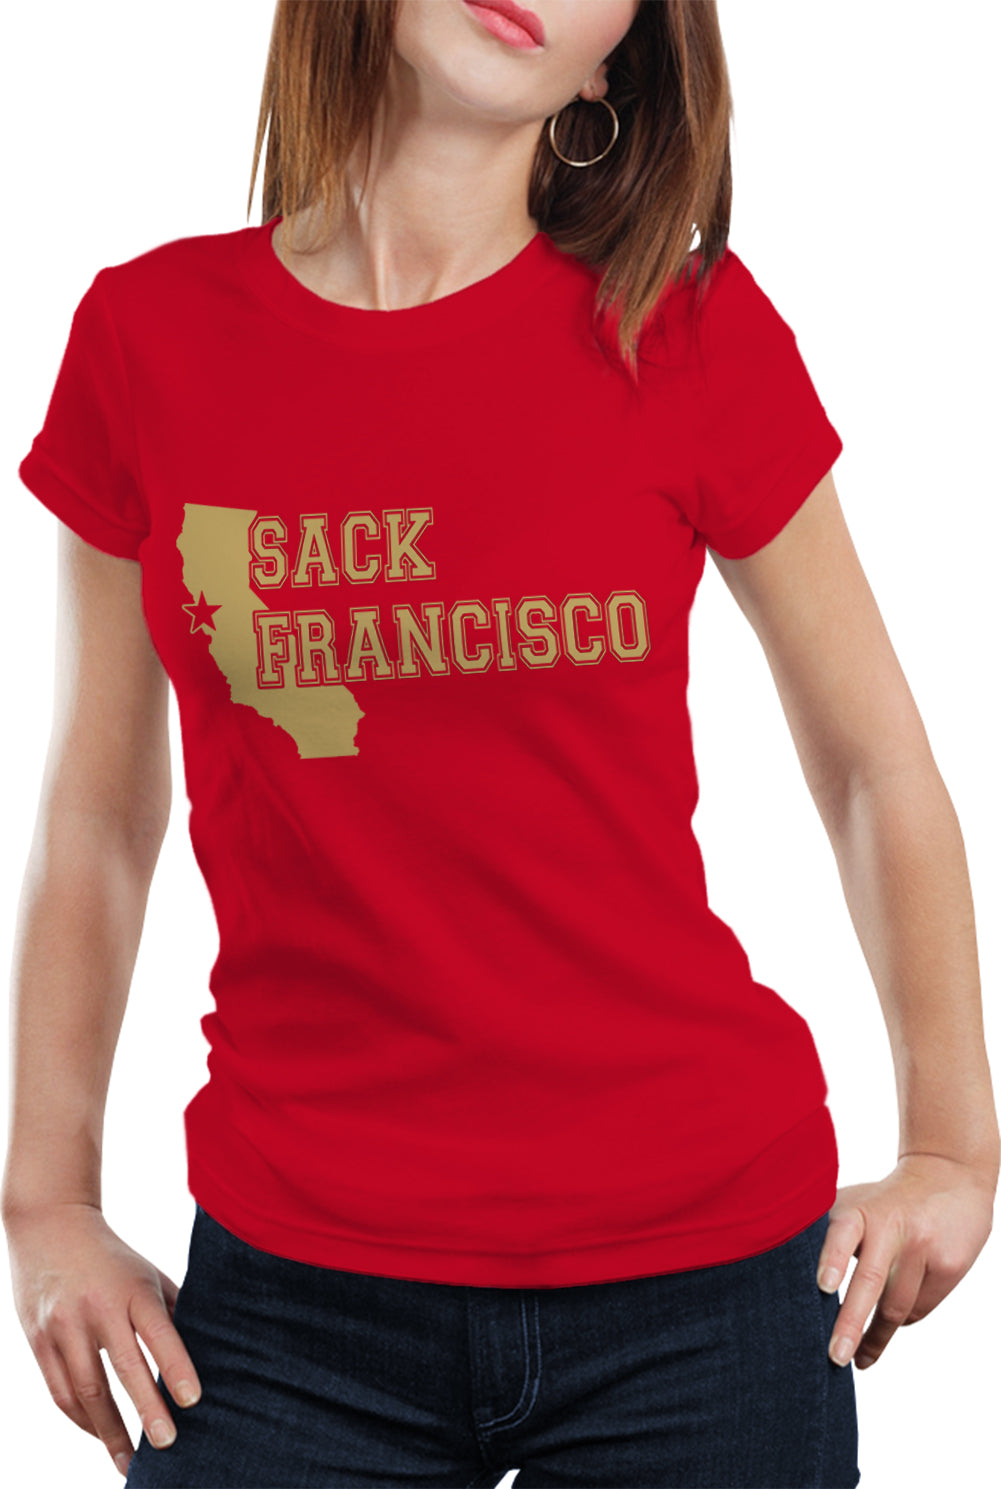 SACK FRANCISCO DEFENSE San Francisco 49ers Football Girl's T-Shirt